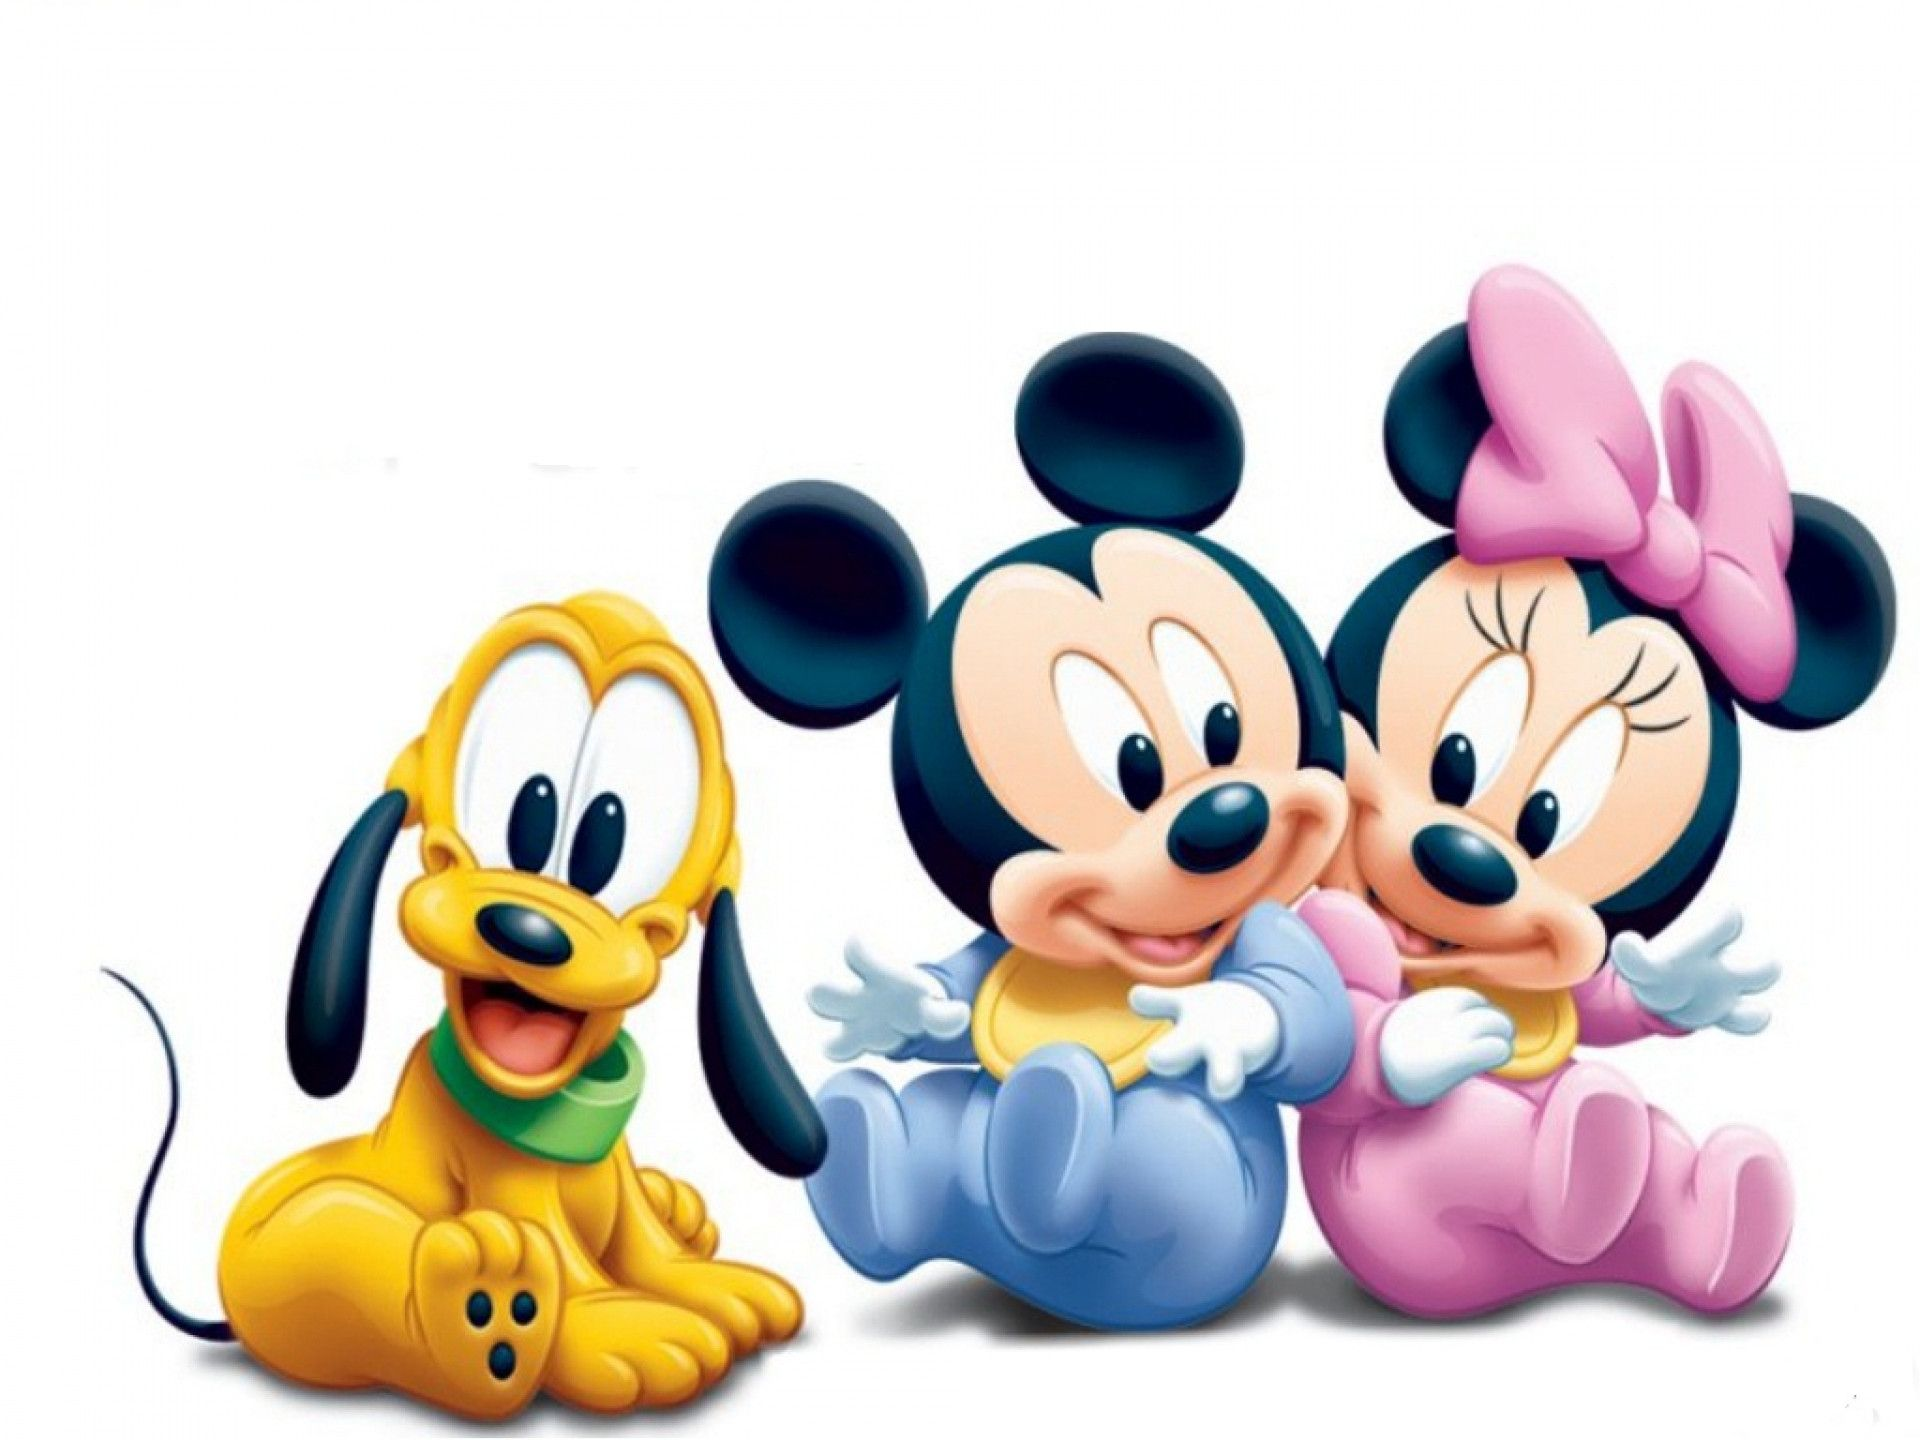 1920x1440 Mickey Mouse Hd Images Get Free Top Quality Mickey Mouse Hd